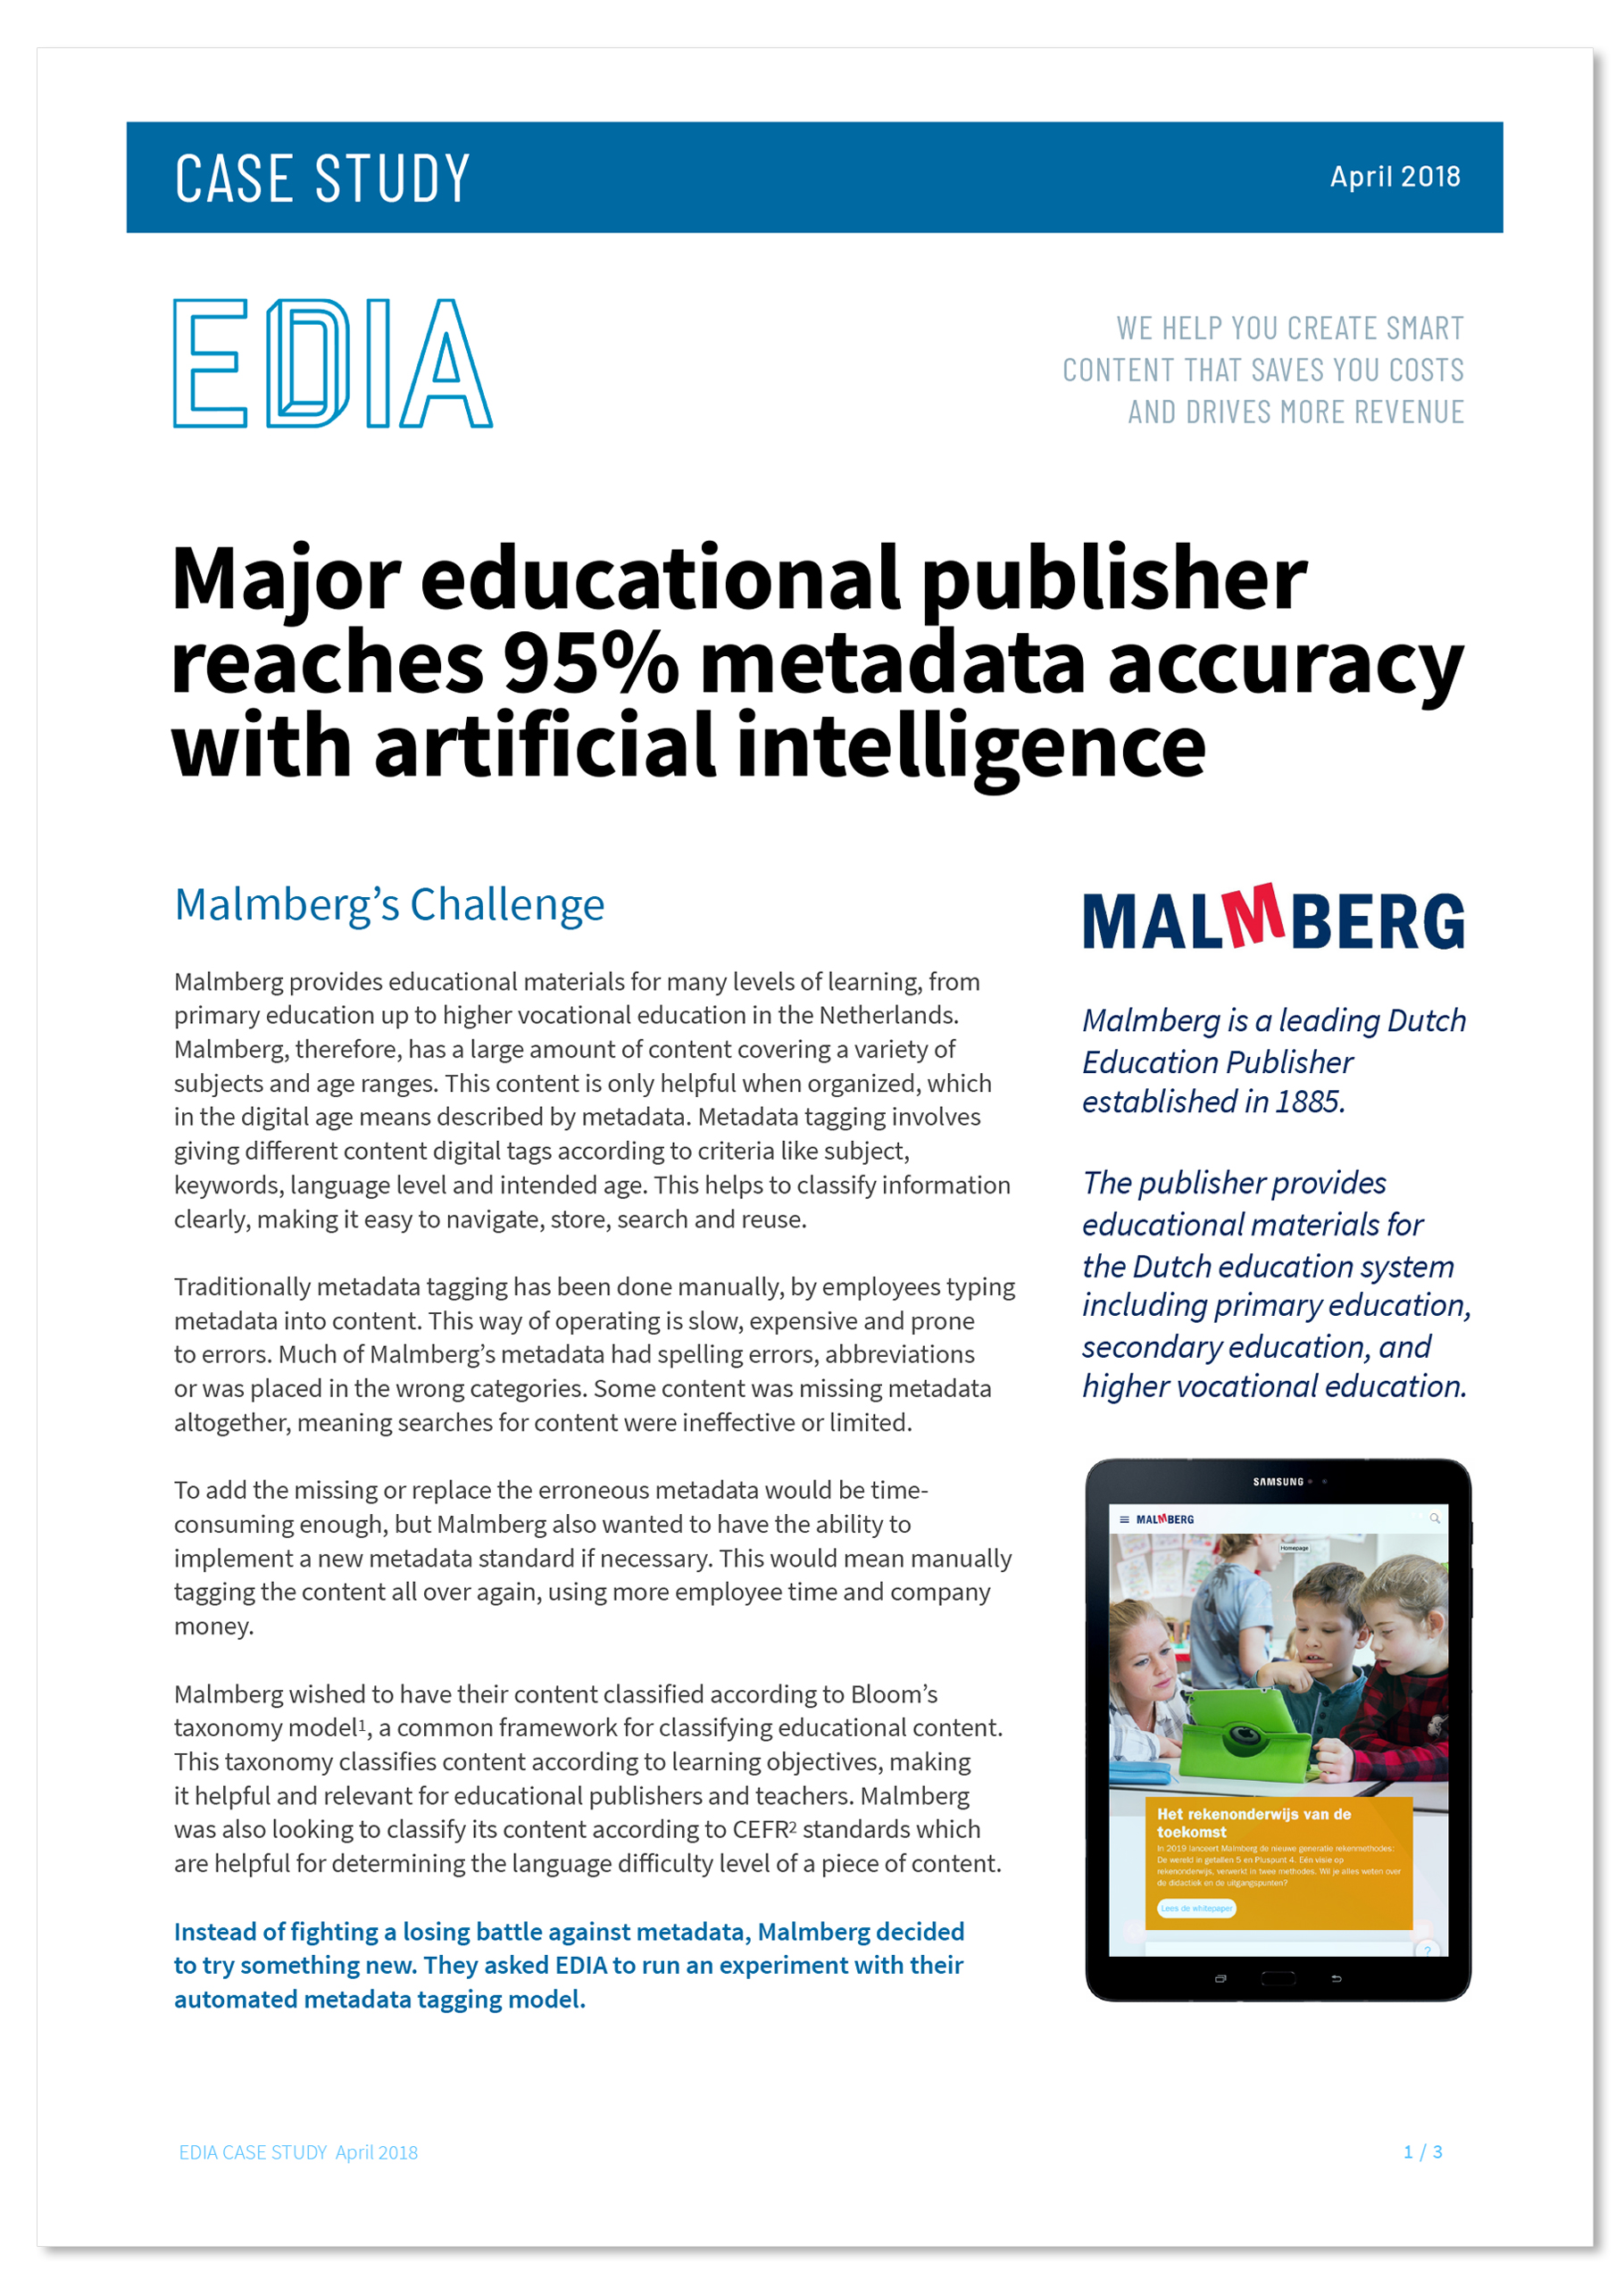 Malmberg casestudy for website link